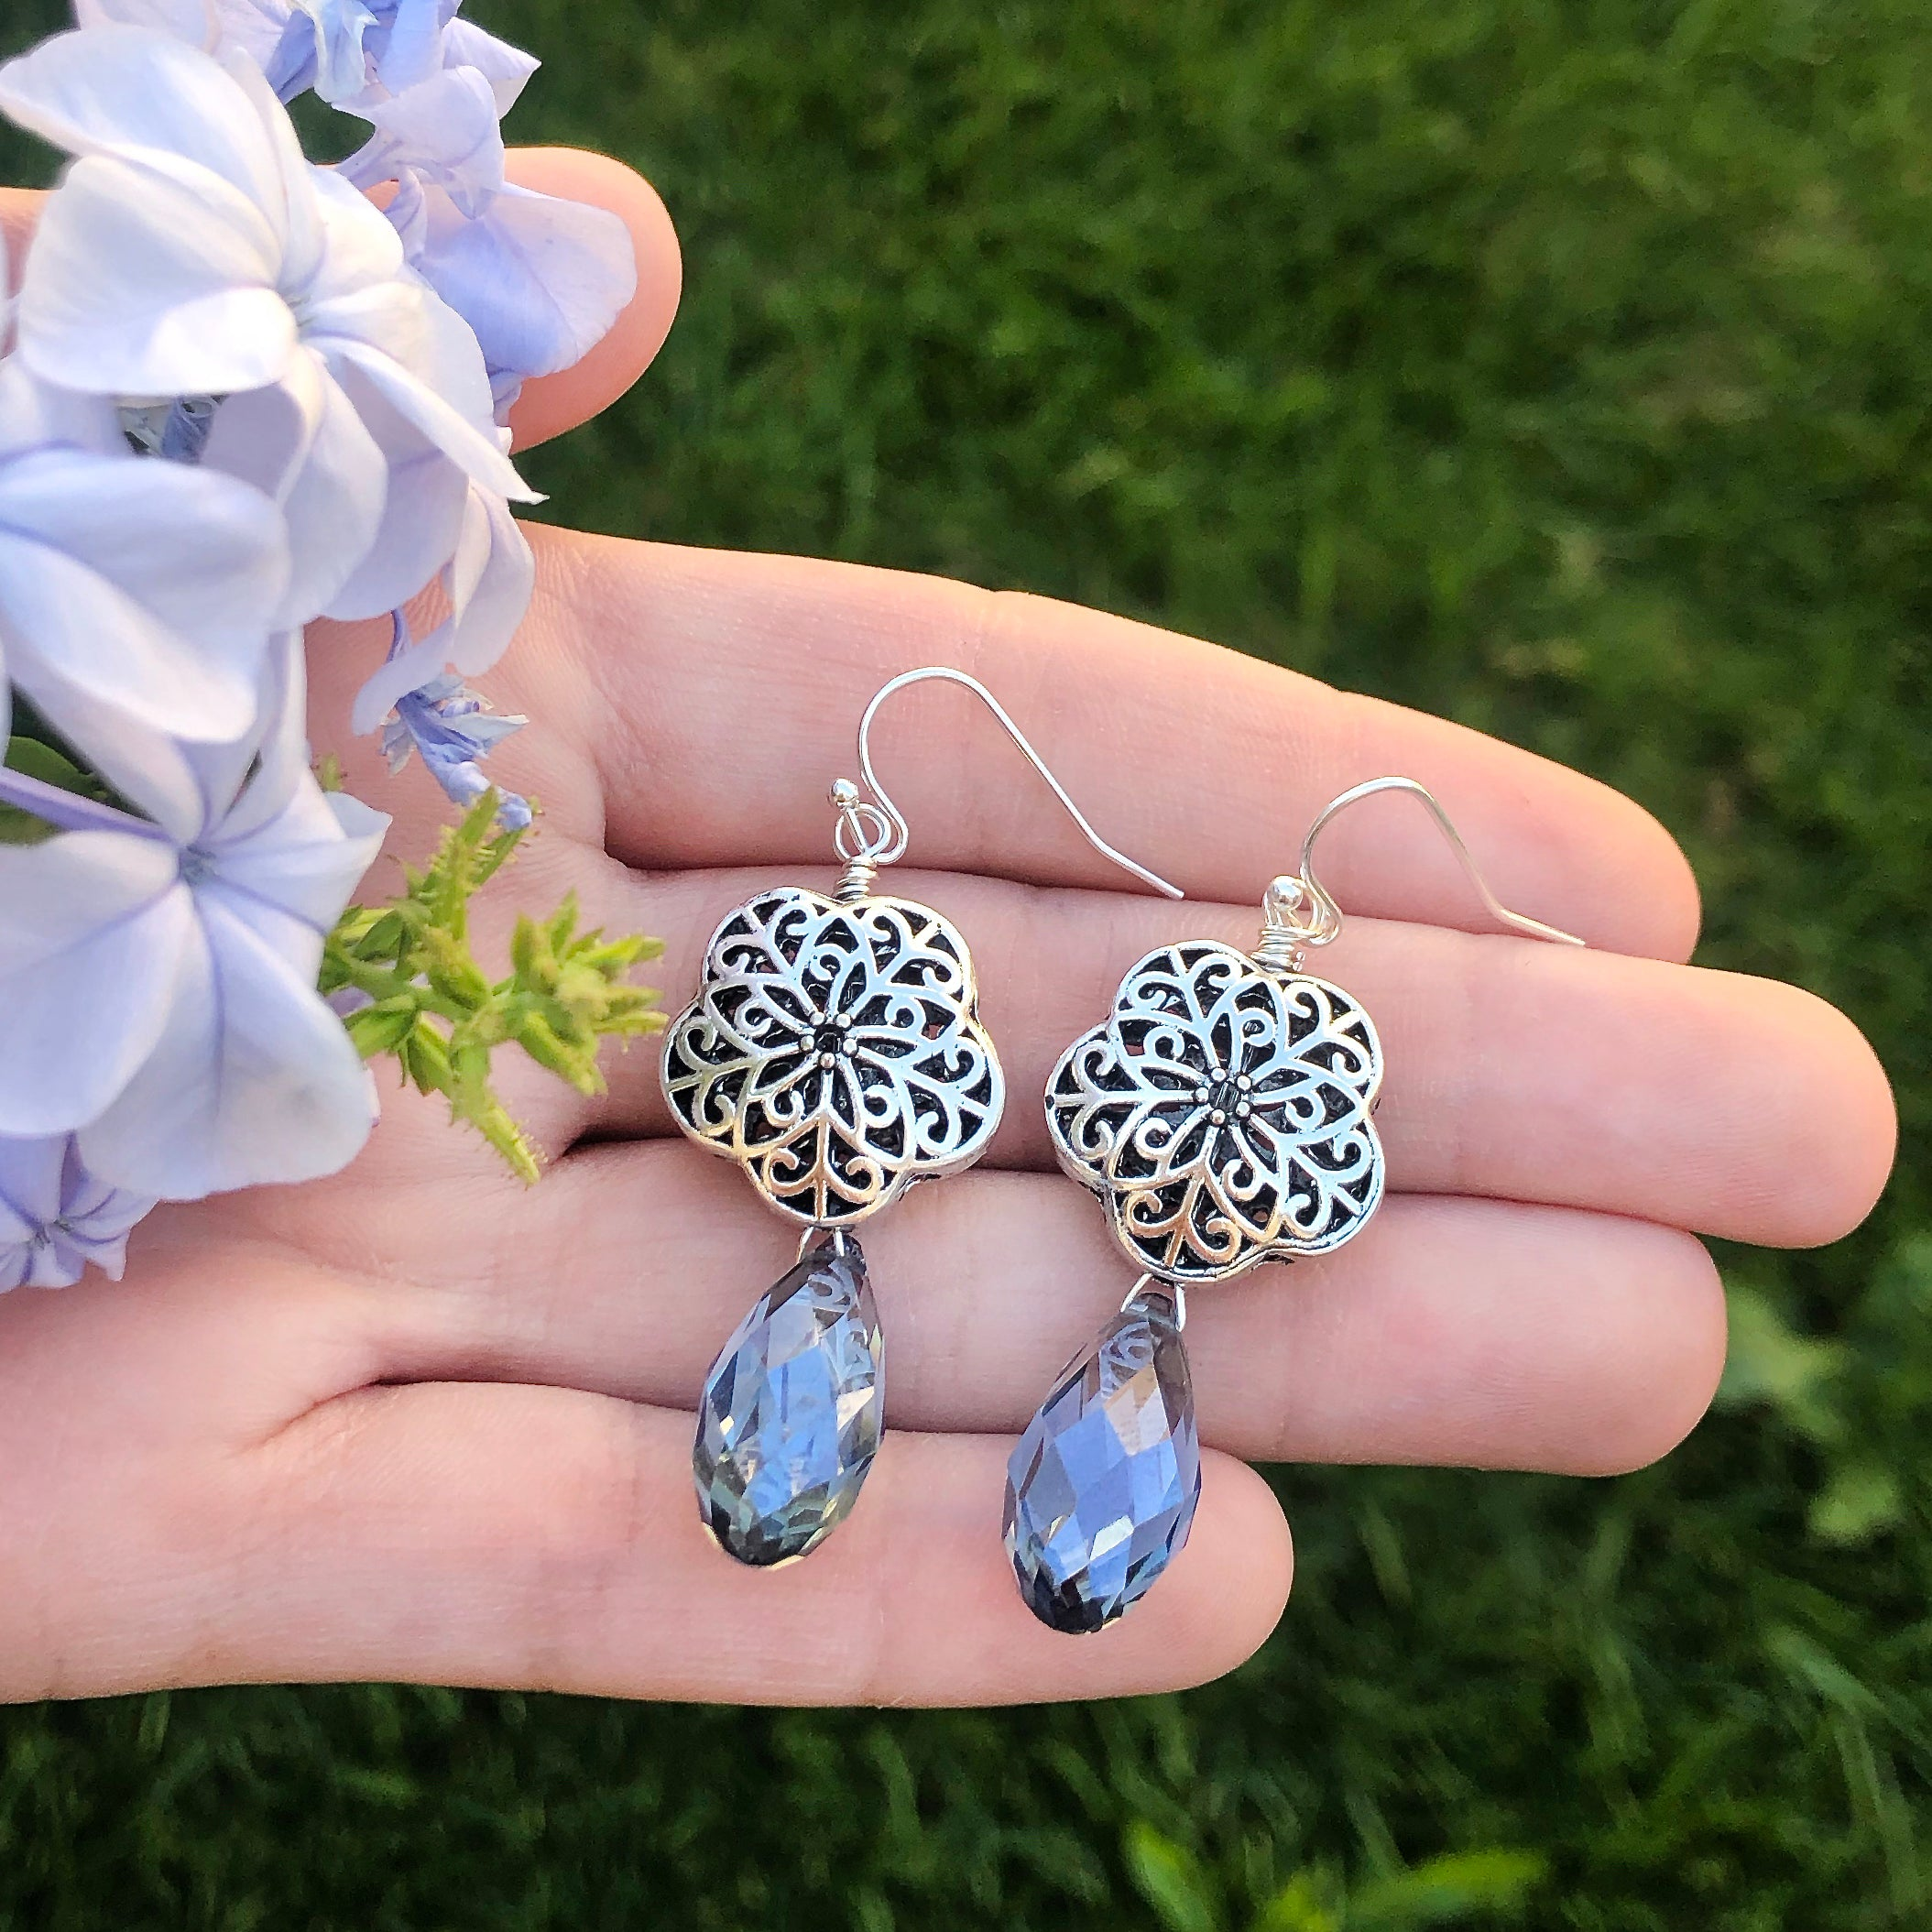 Evening Breeze DIY Earrings